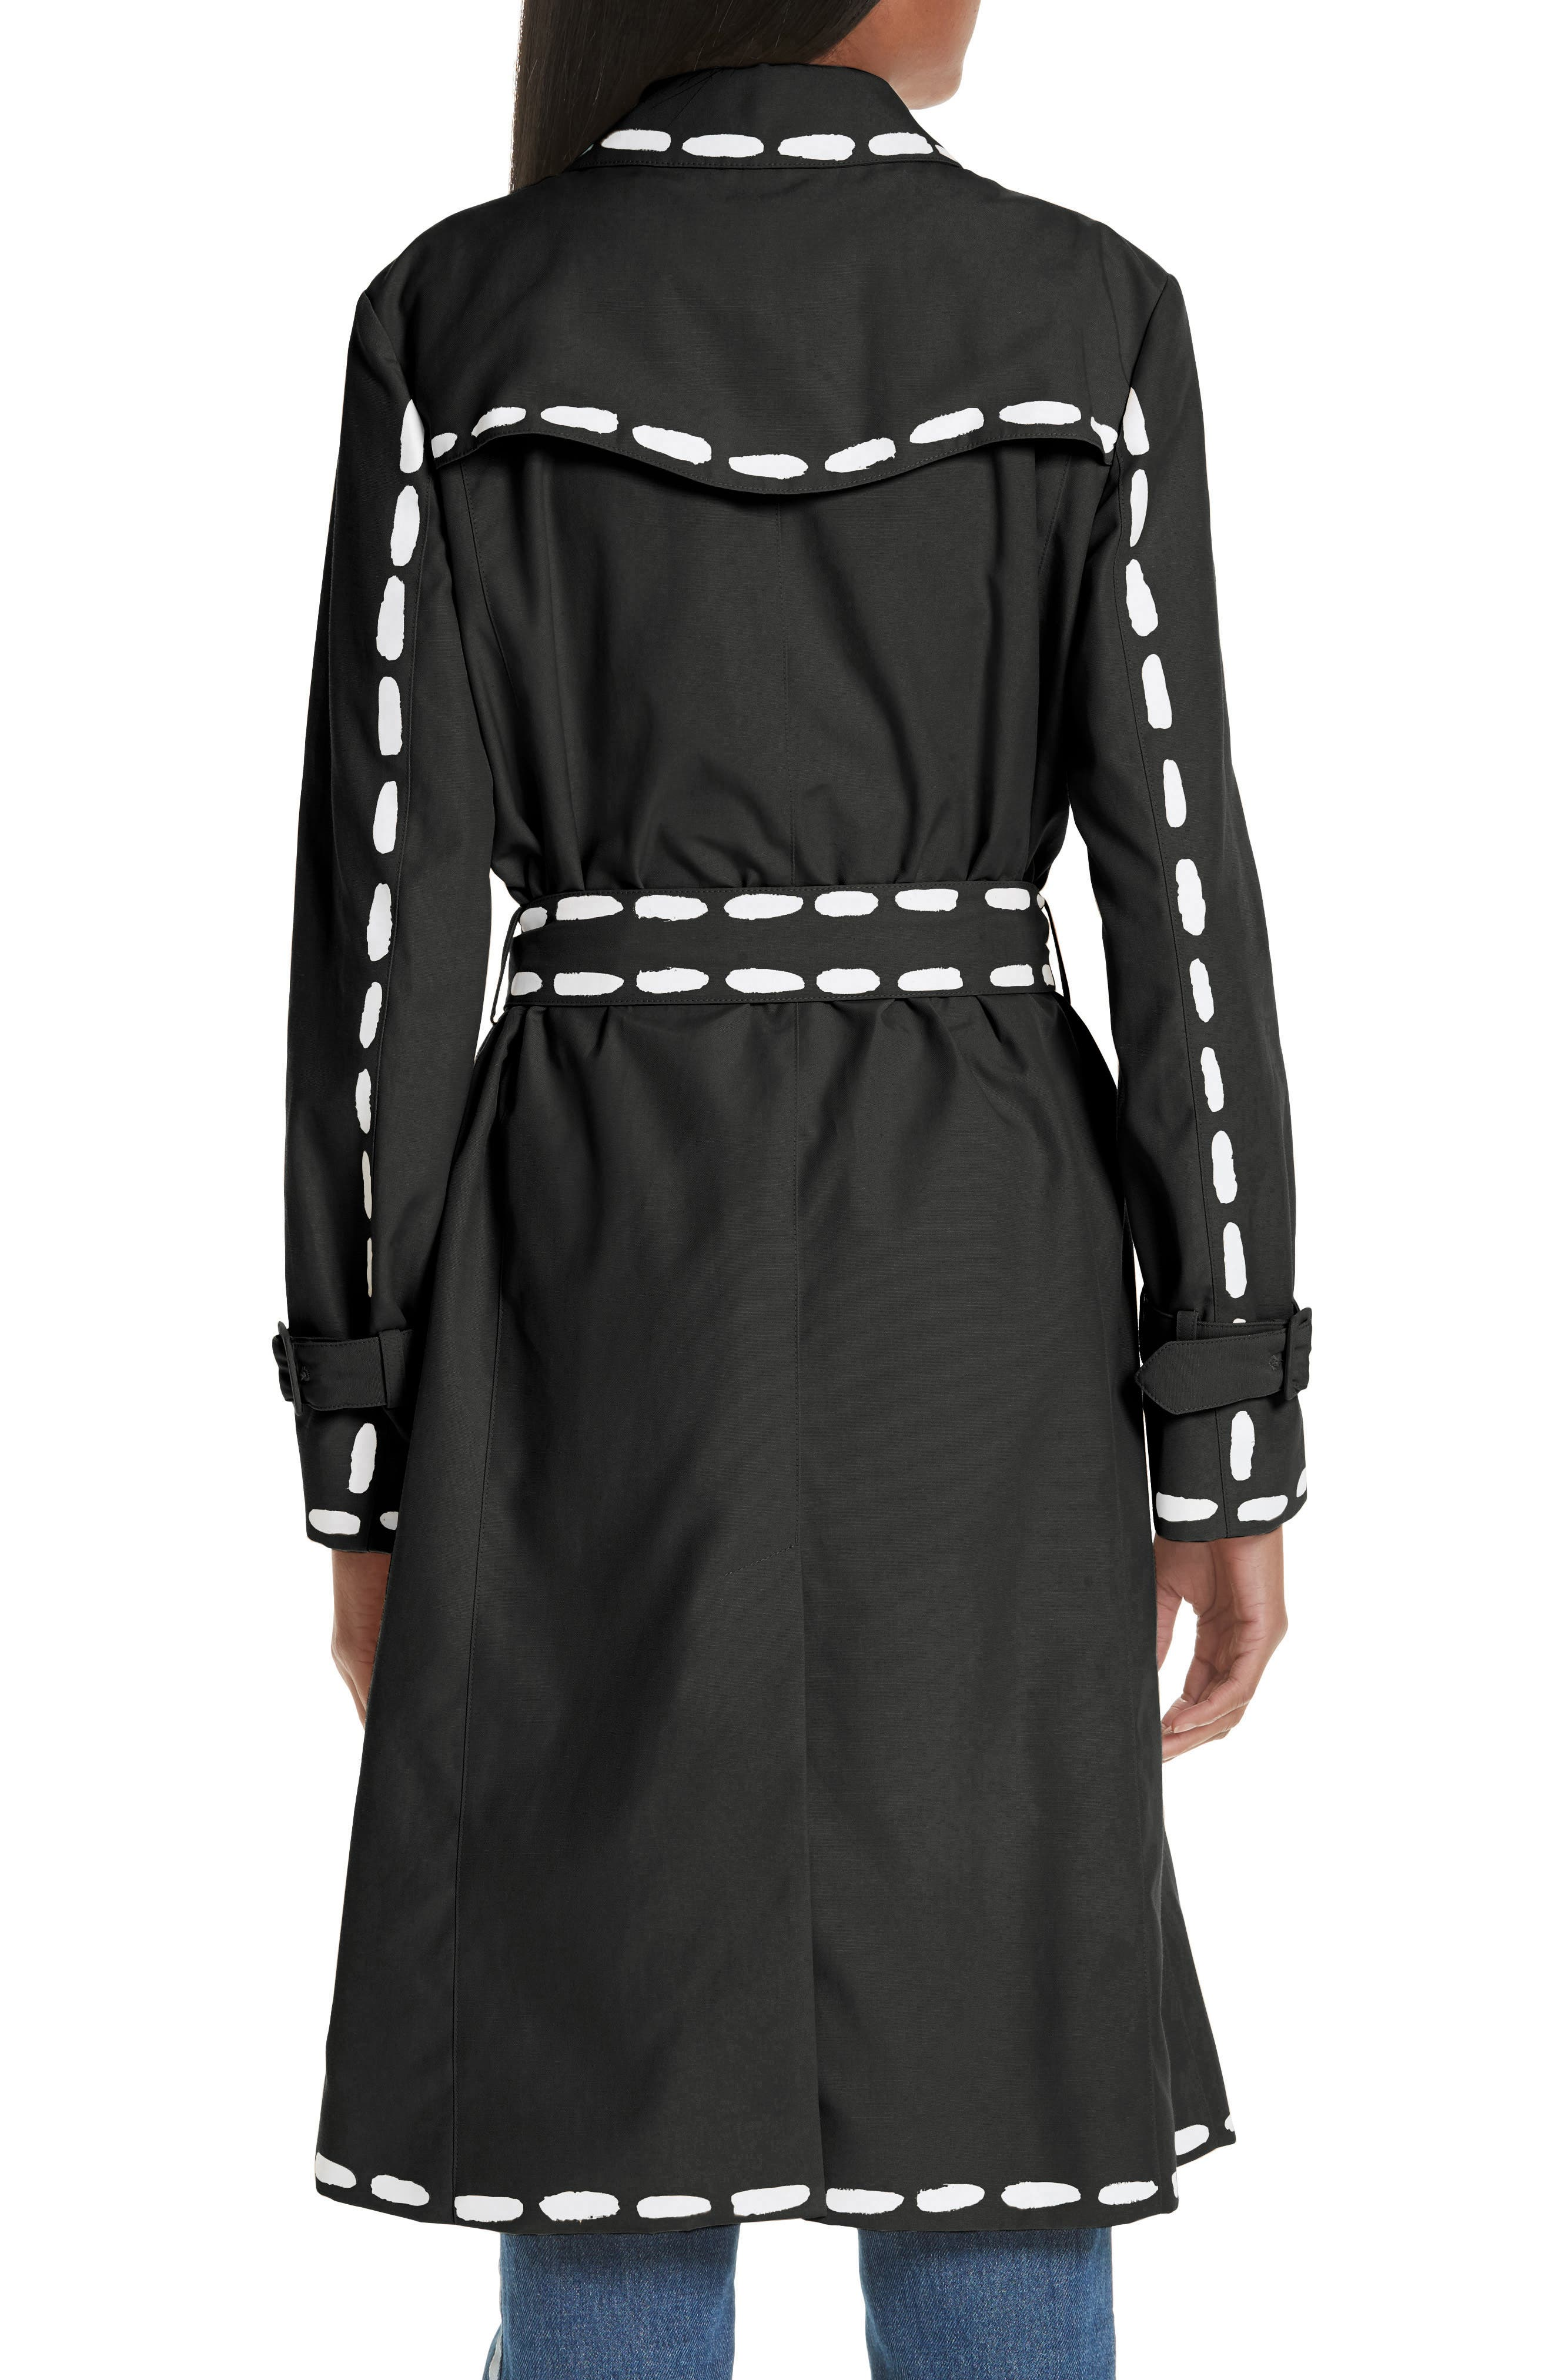 MOSCHINO, Dotted Line Trench Coat, Alternate thumbnail 2, color, BLACK